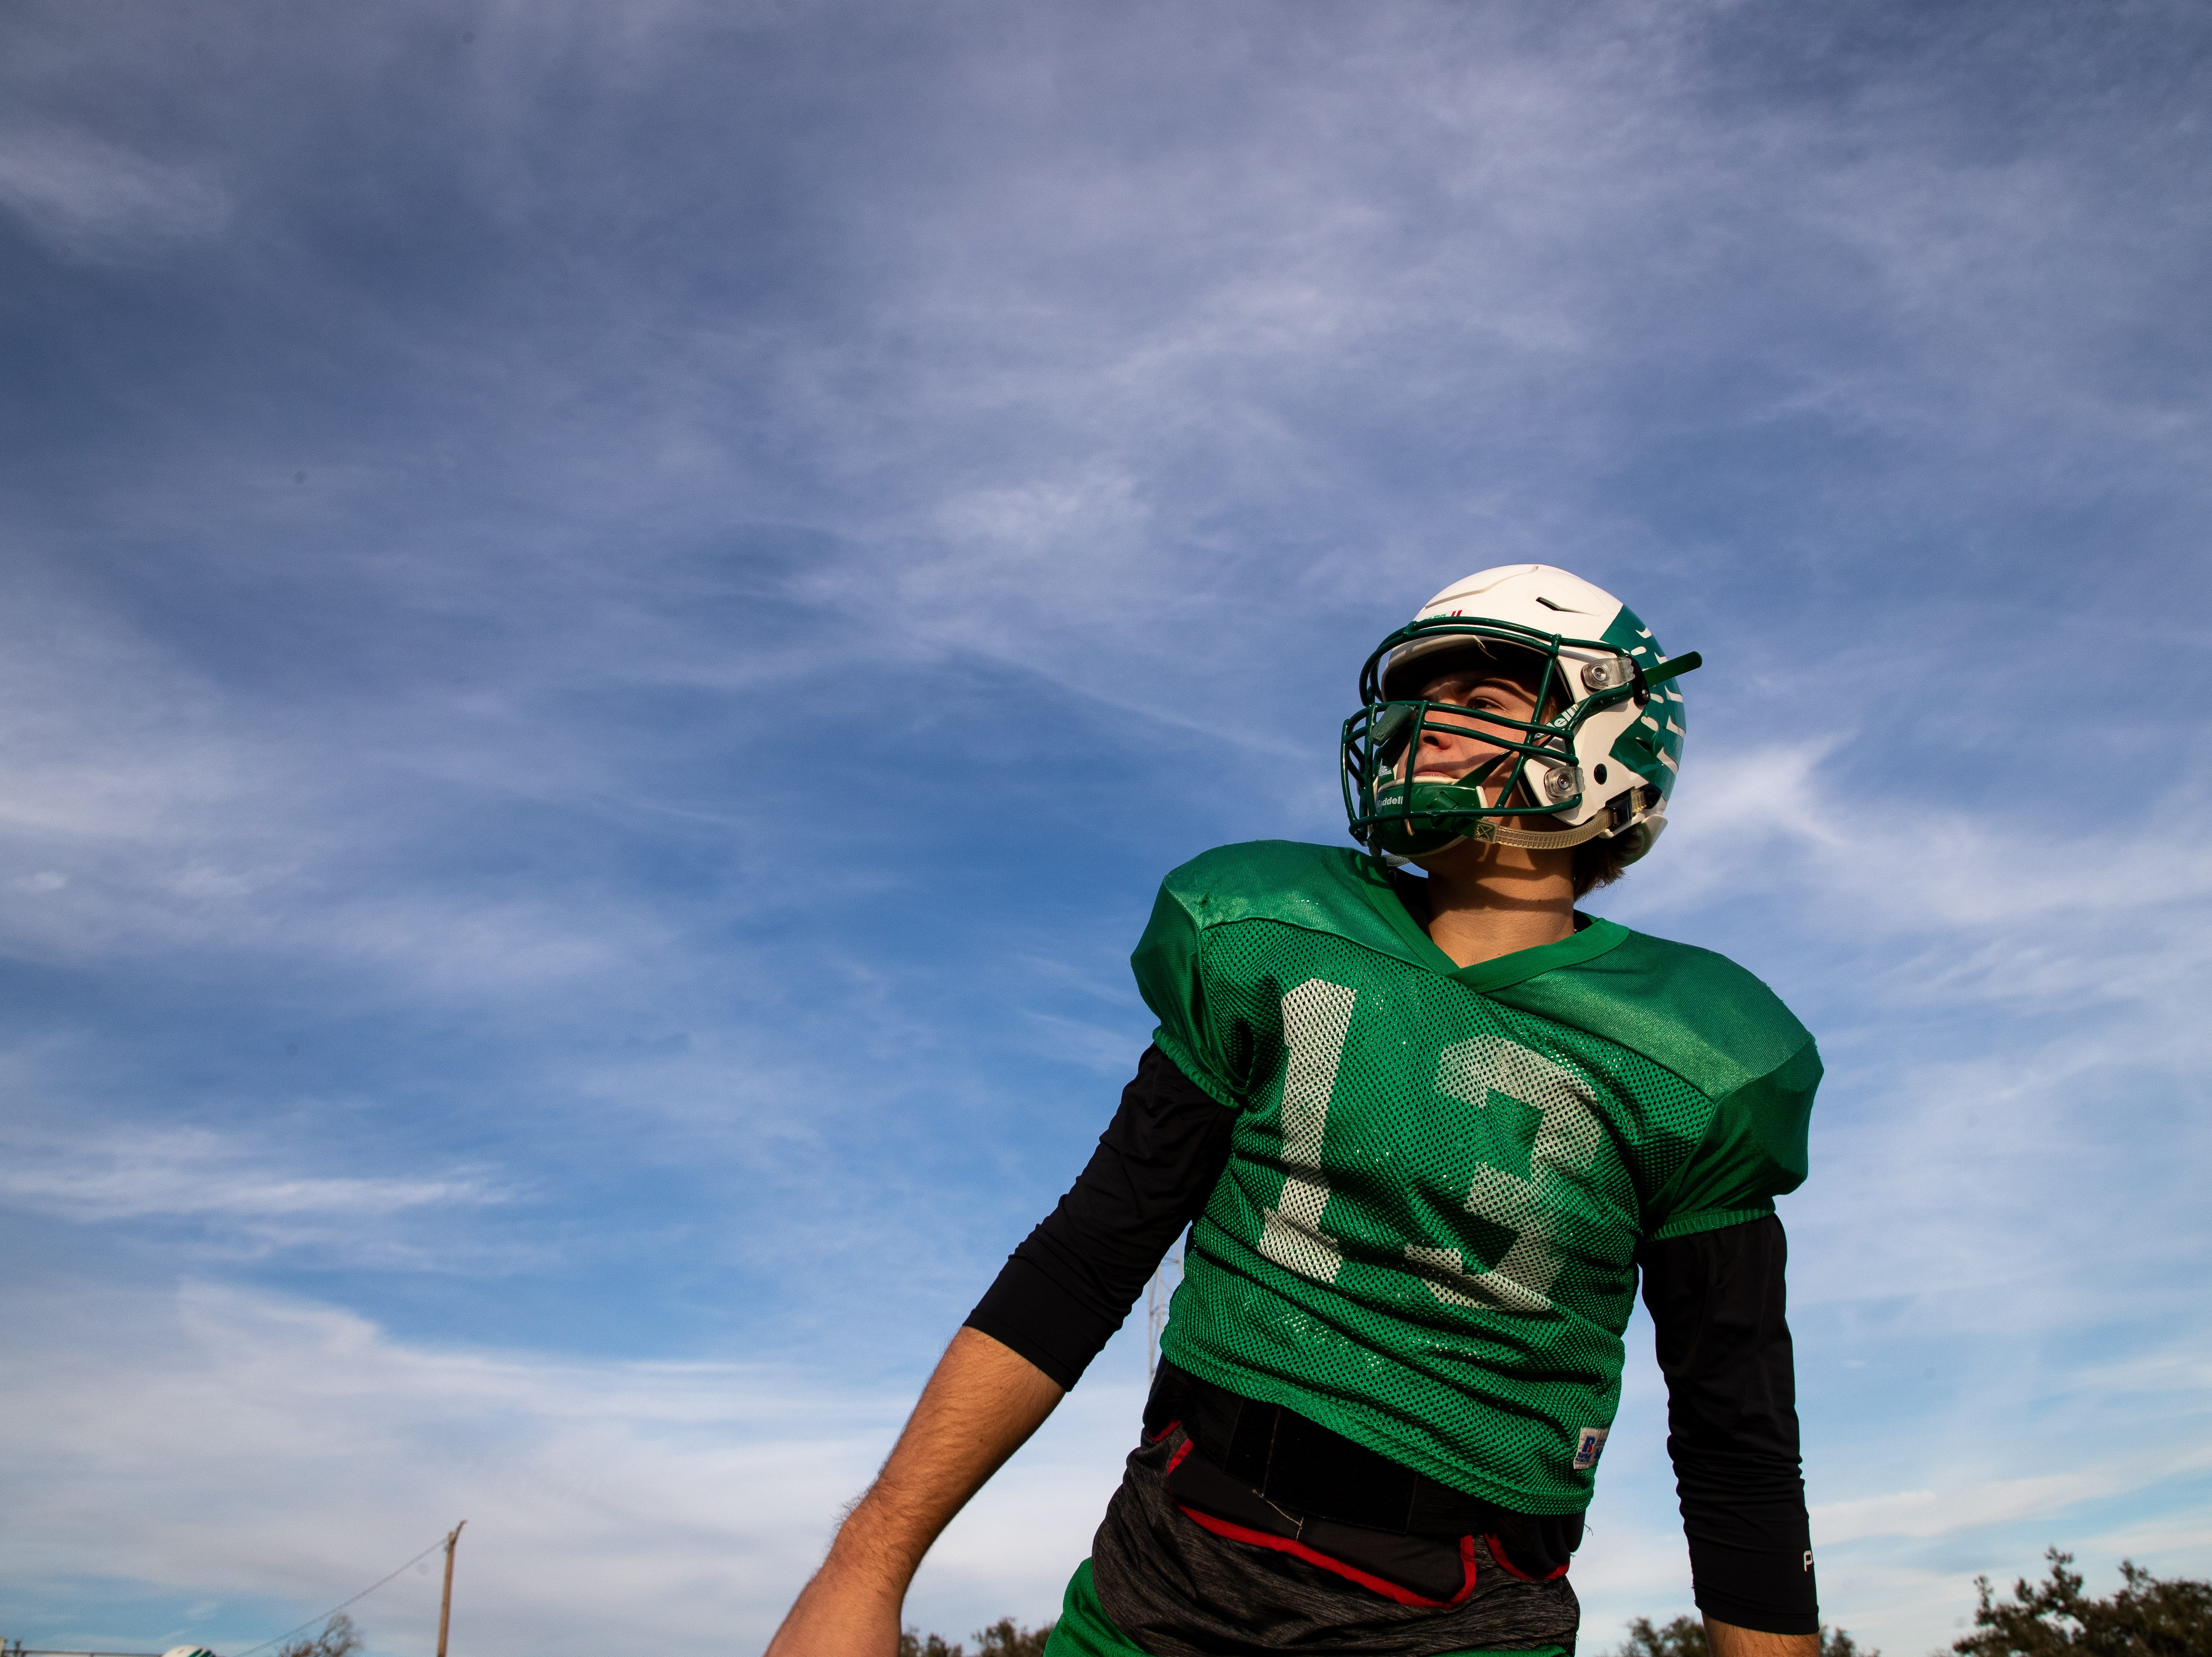 The Woodsboro quarterback Kalob Jochetz throws the ball during practice on Tuesday, Nov. 27, 2018.  Woodsboro holds a record of 12-0 this season, best record in school history.